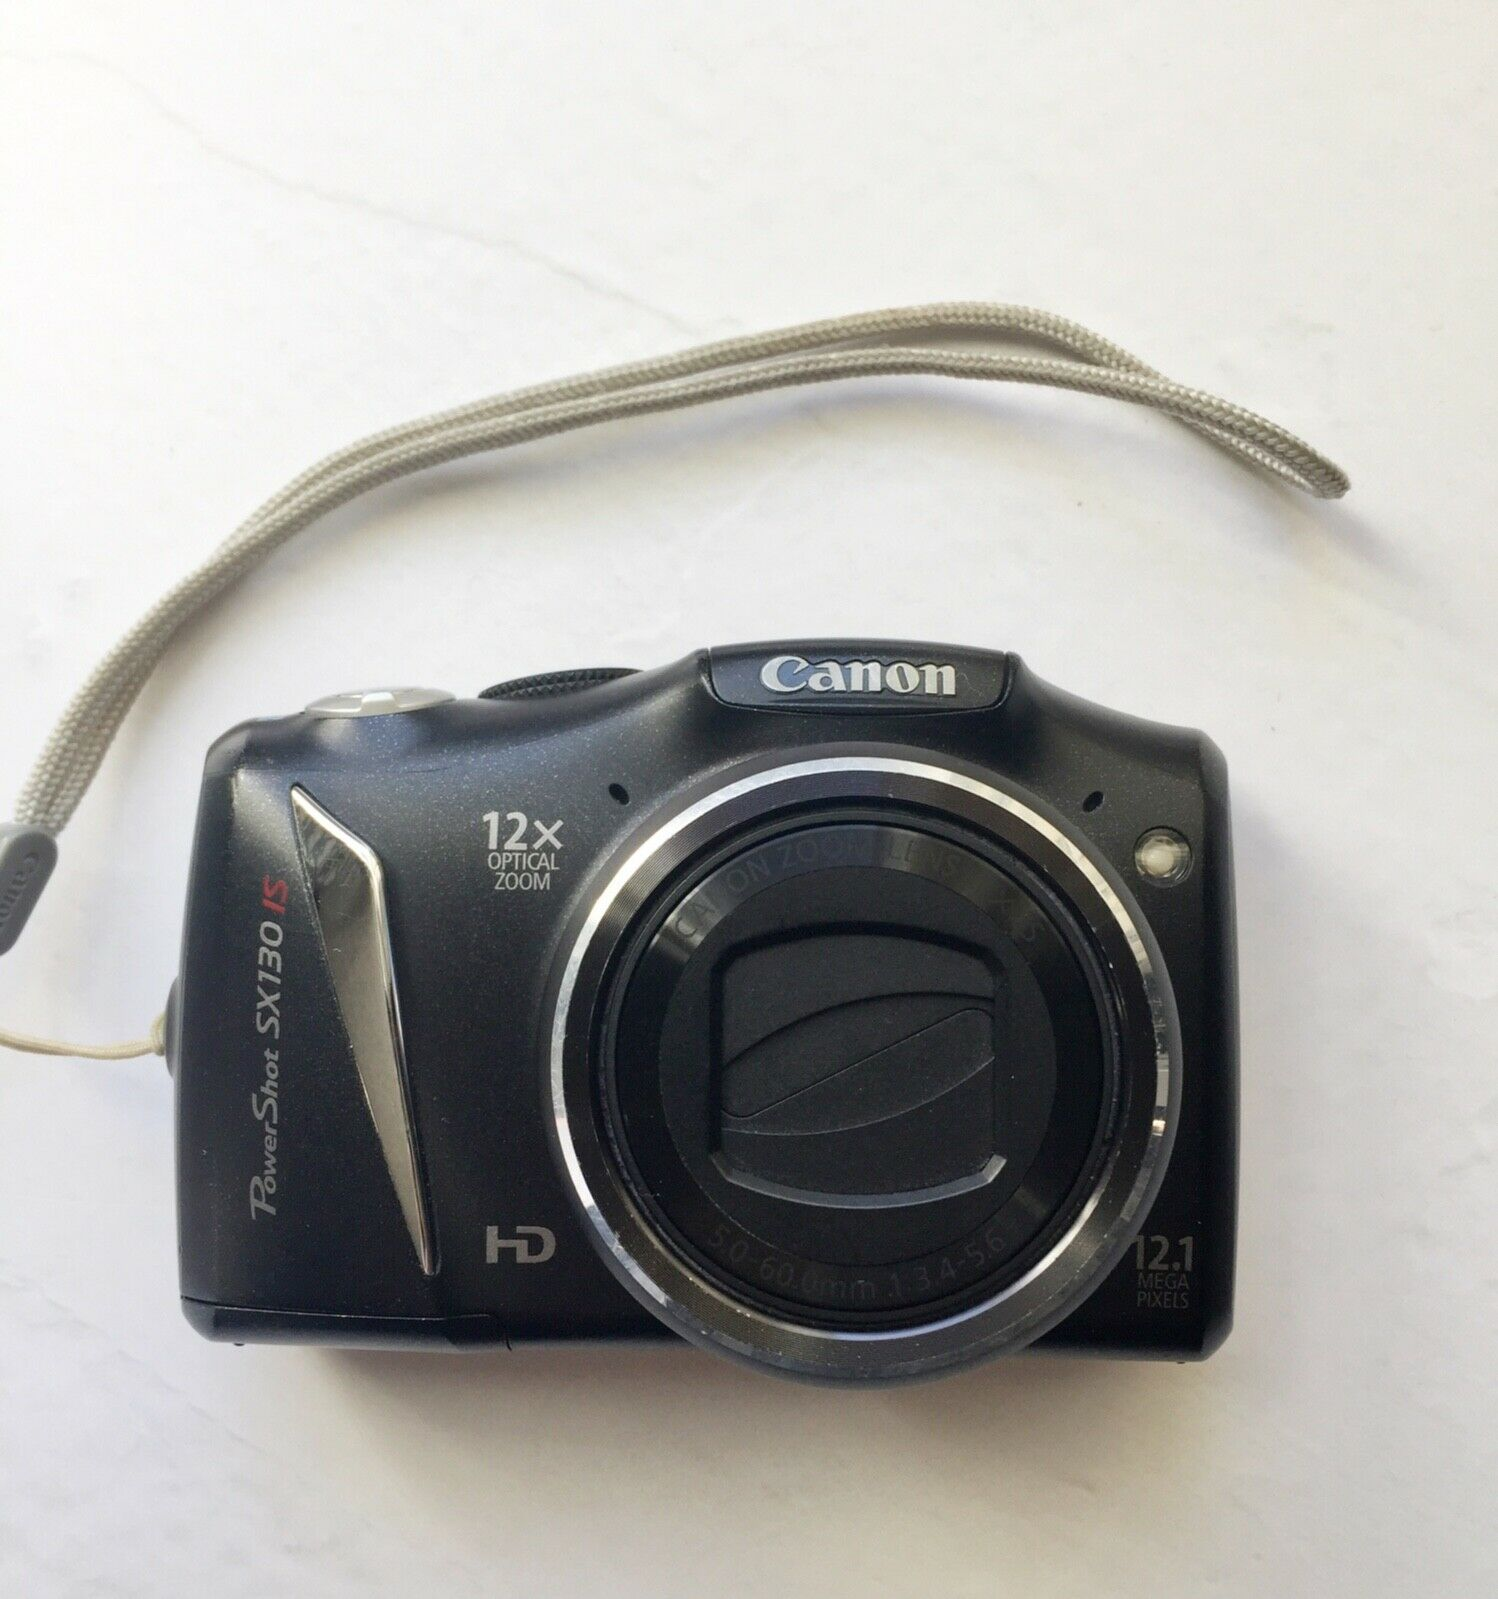 USED CANON Digital CAMERA POWERSHOT SX130 IS 12.1MP Digital 12x Optical Zoom + 8GB Memory Card Fully Tested